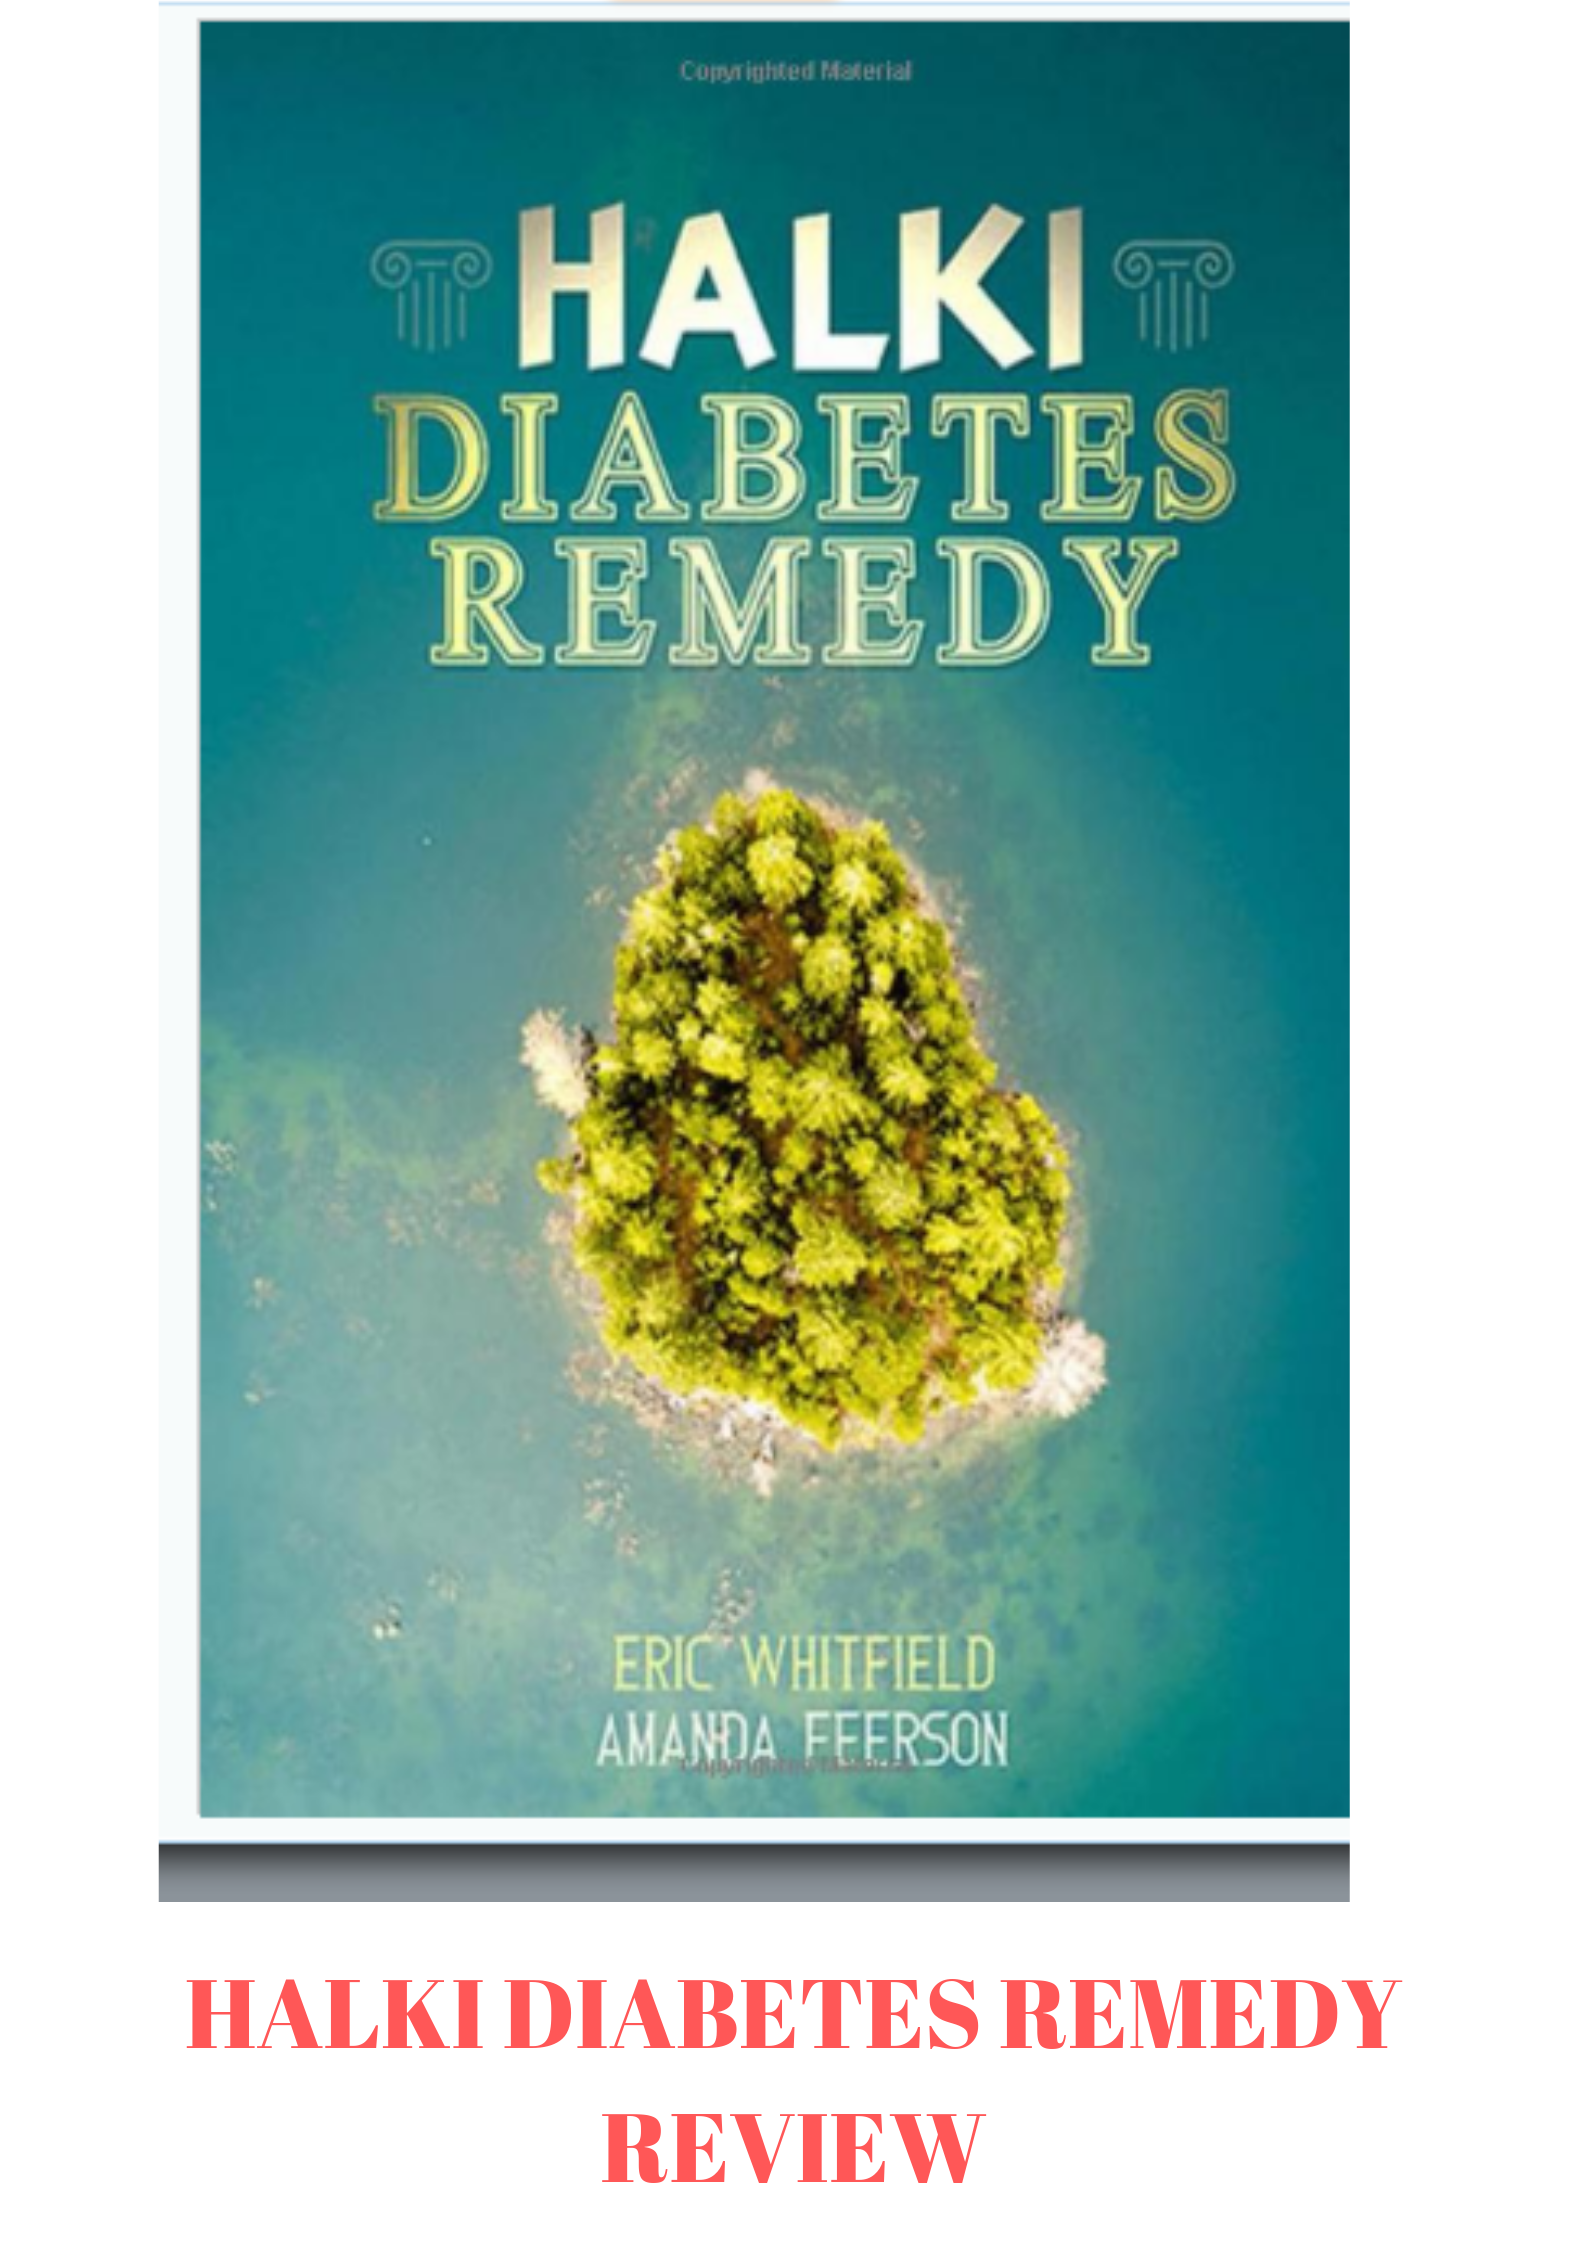 Halki diabetes remedy review-The truth EXPOSED finally